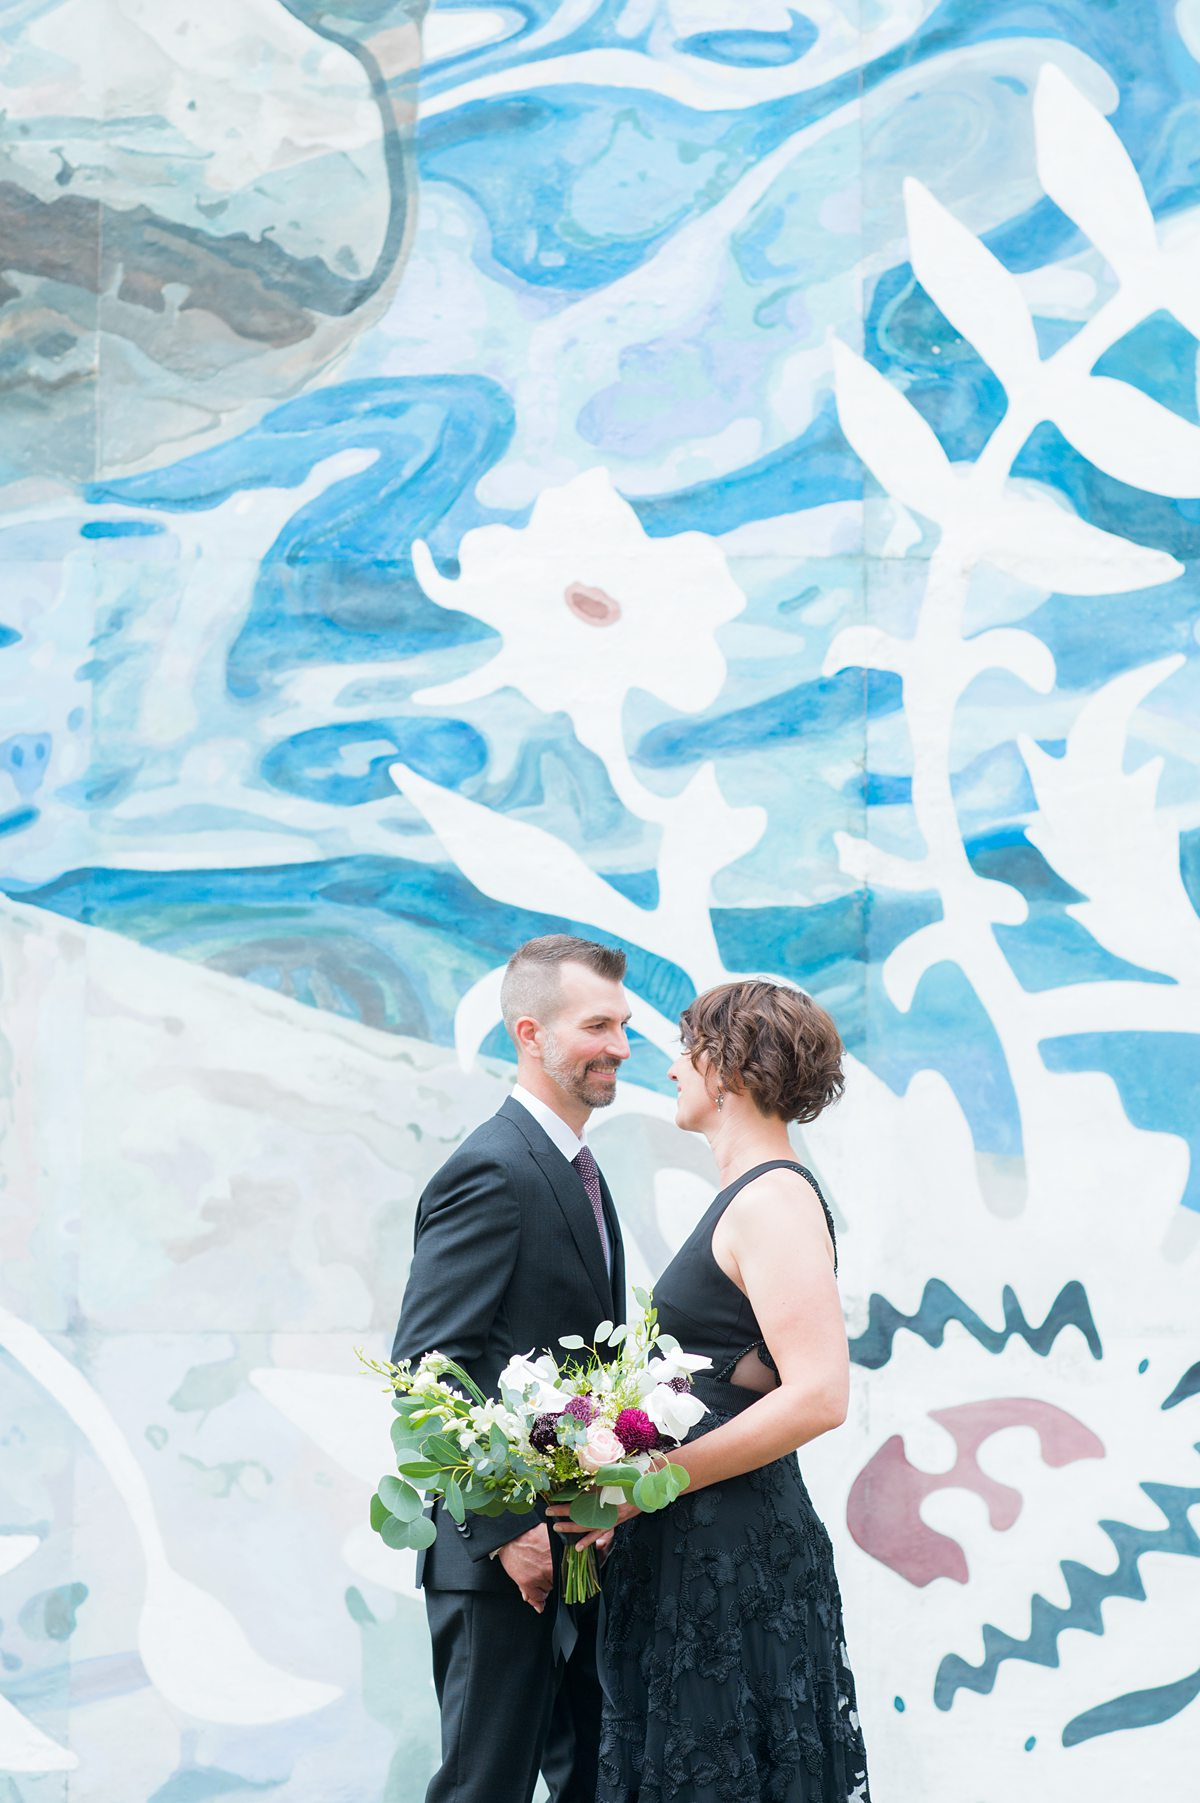 Bride and groom in front of a colorful mural.